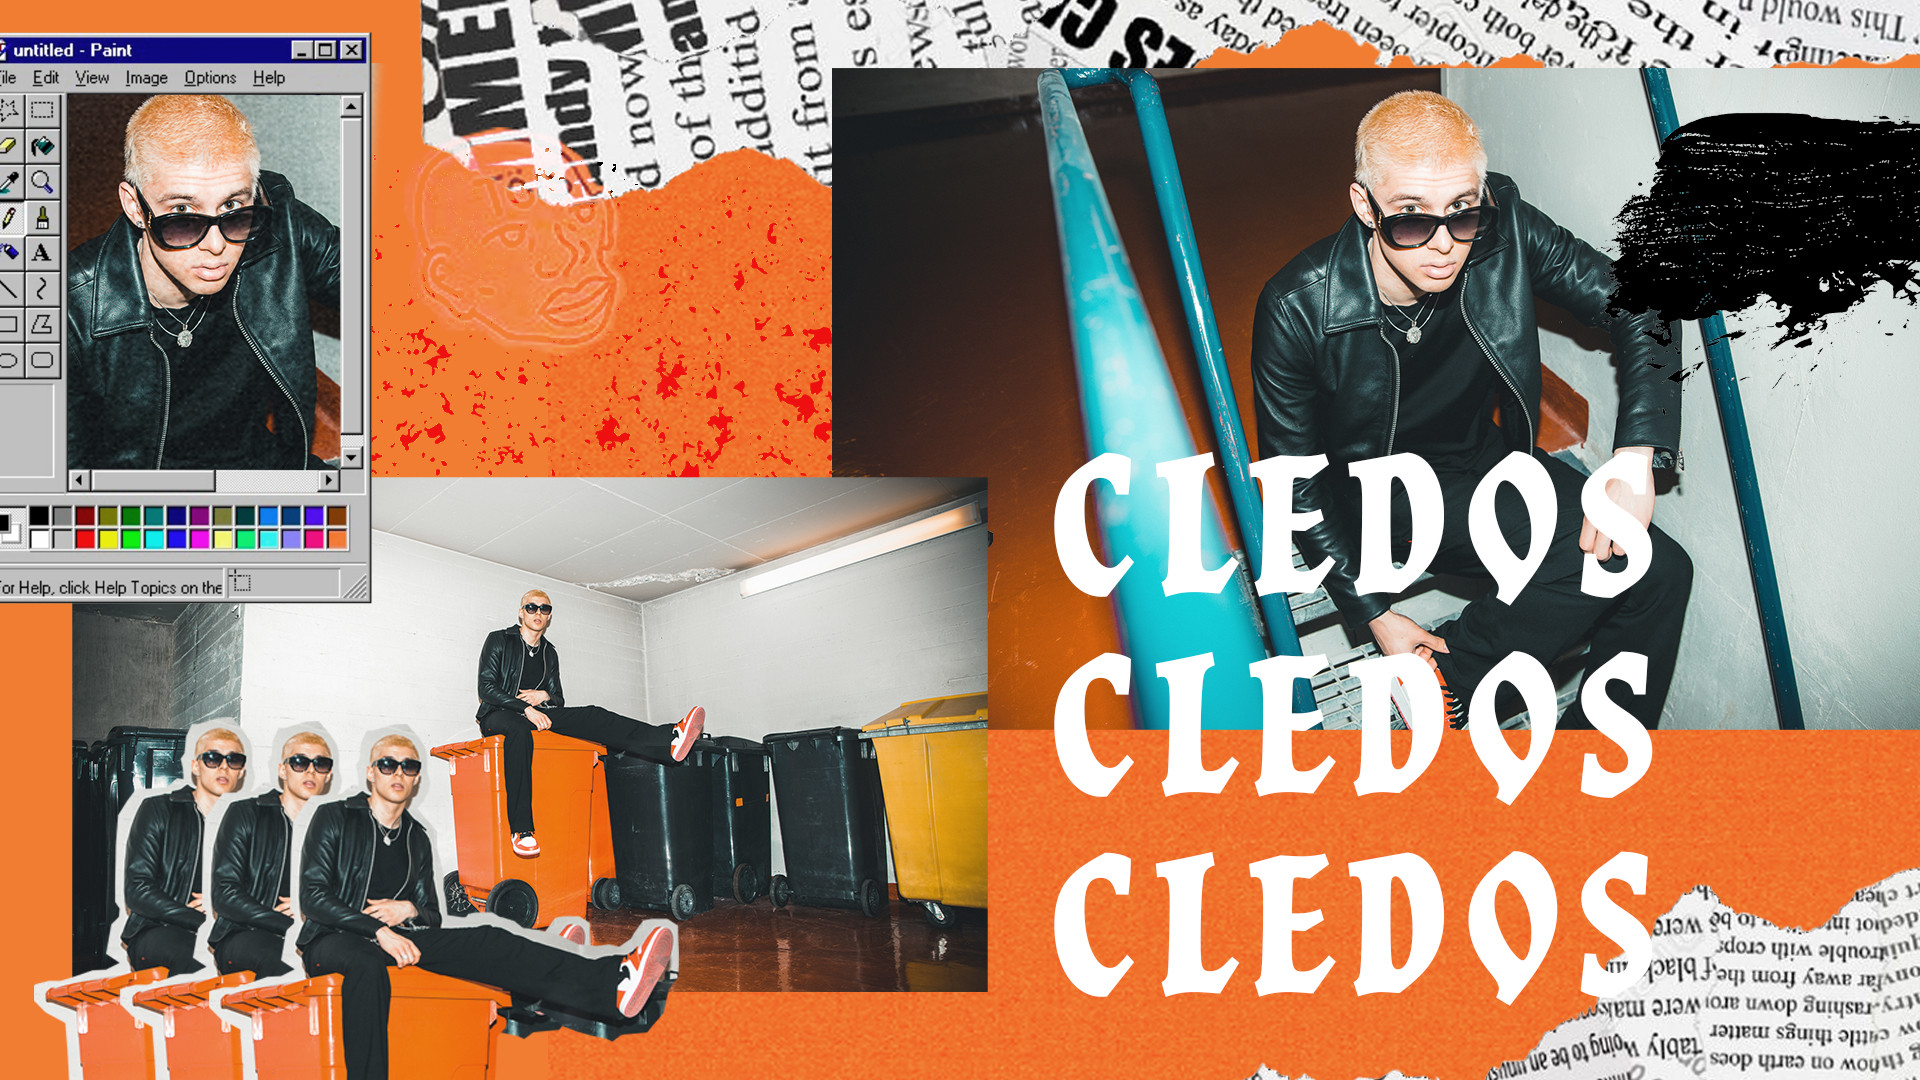 Cledos for YleX